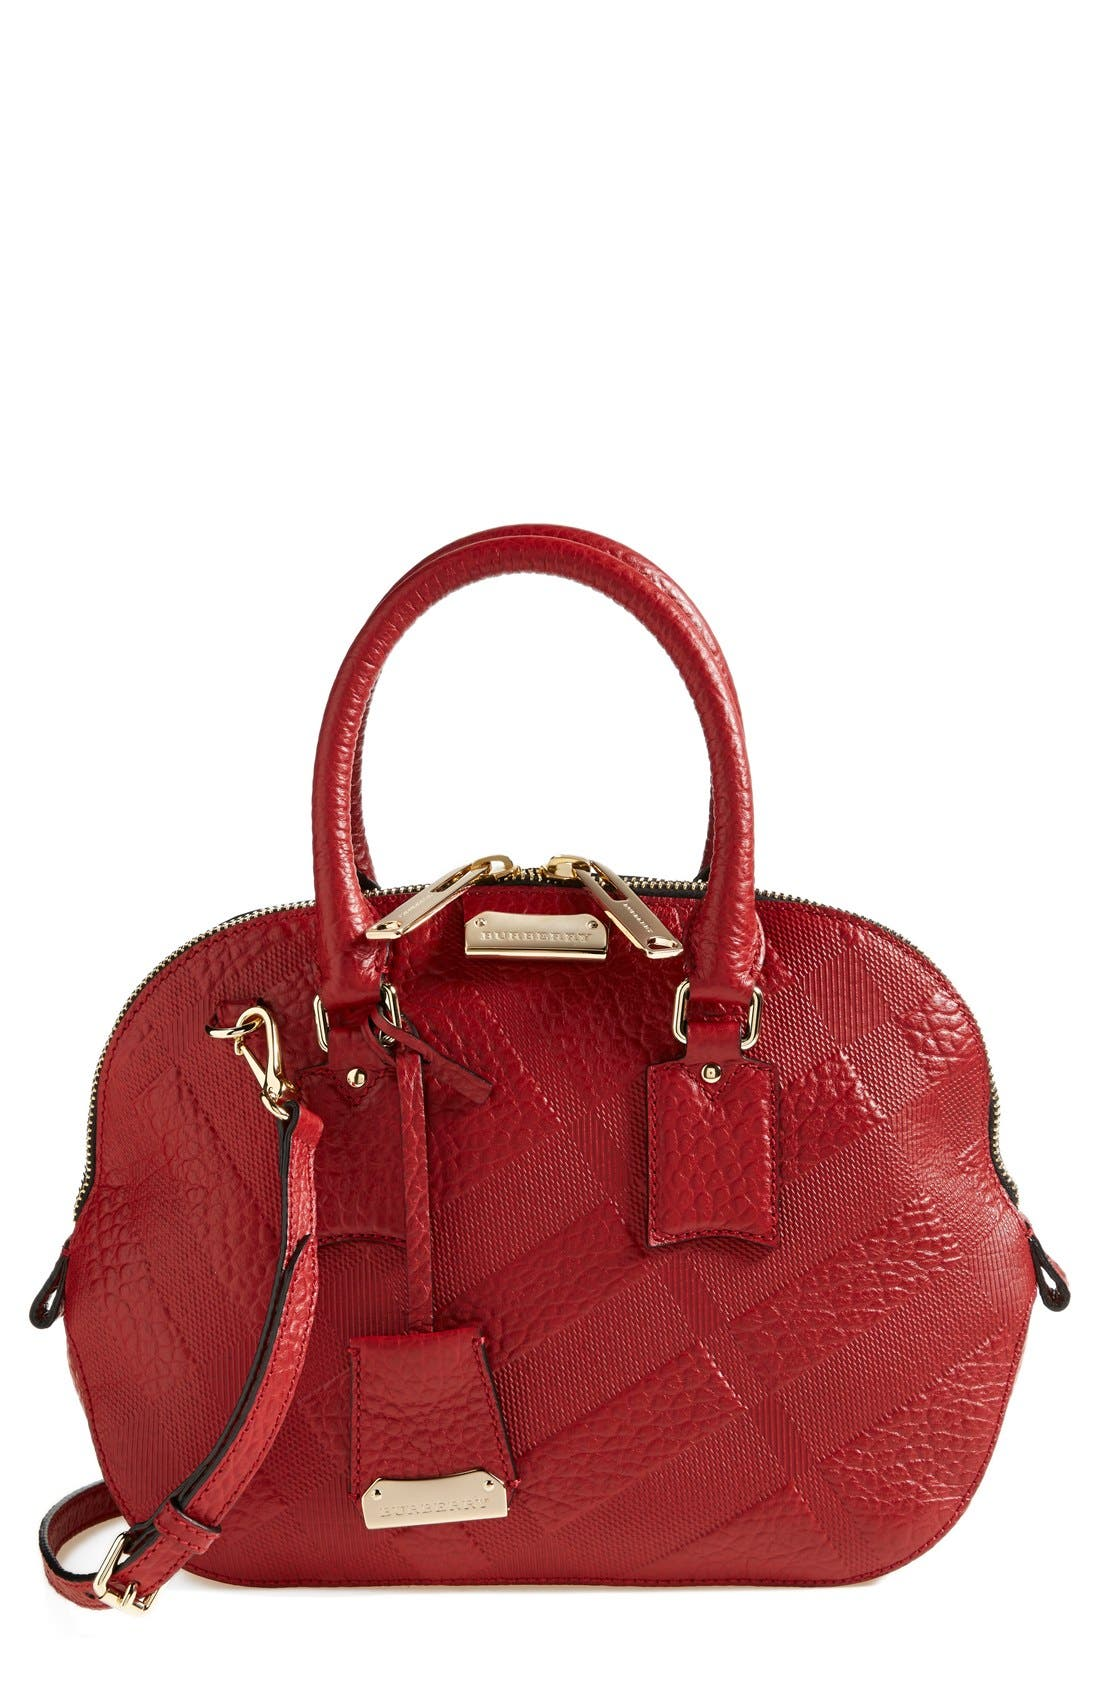 Alternate Image 1 Selected - Burberry 'Small Orchard' Leather Satchel